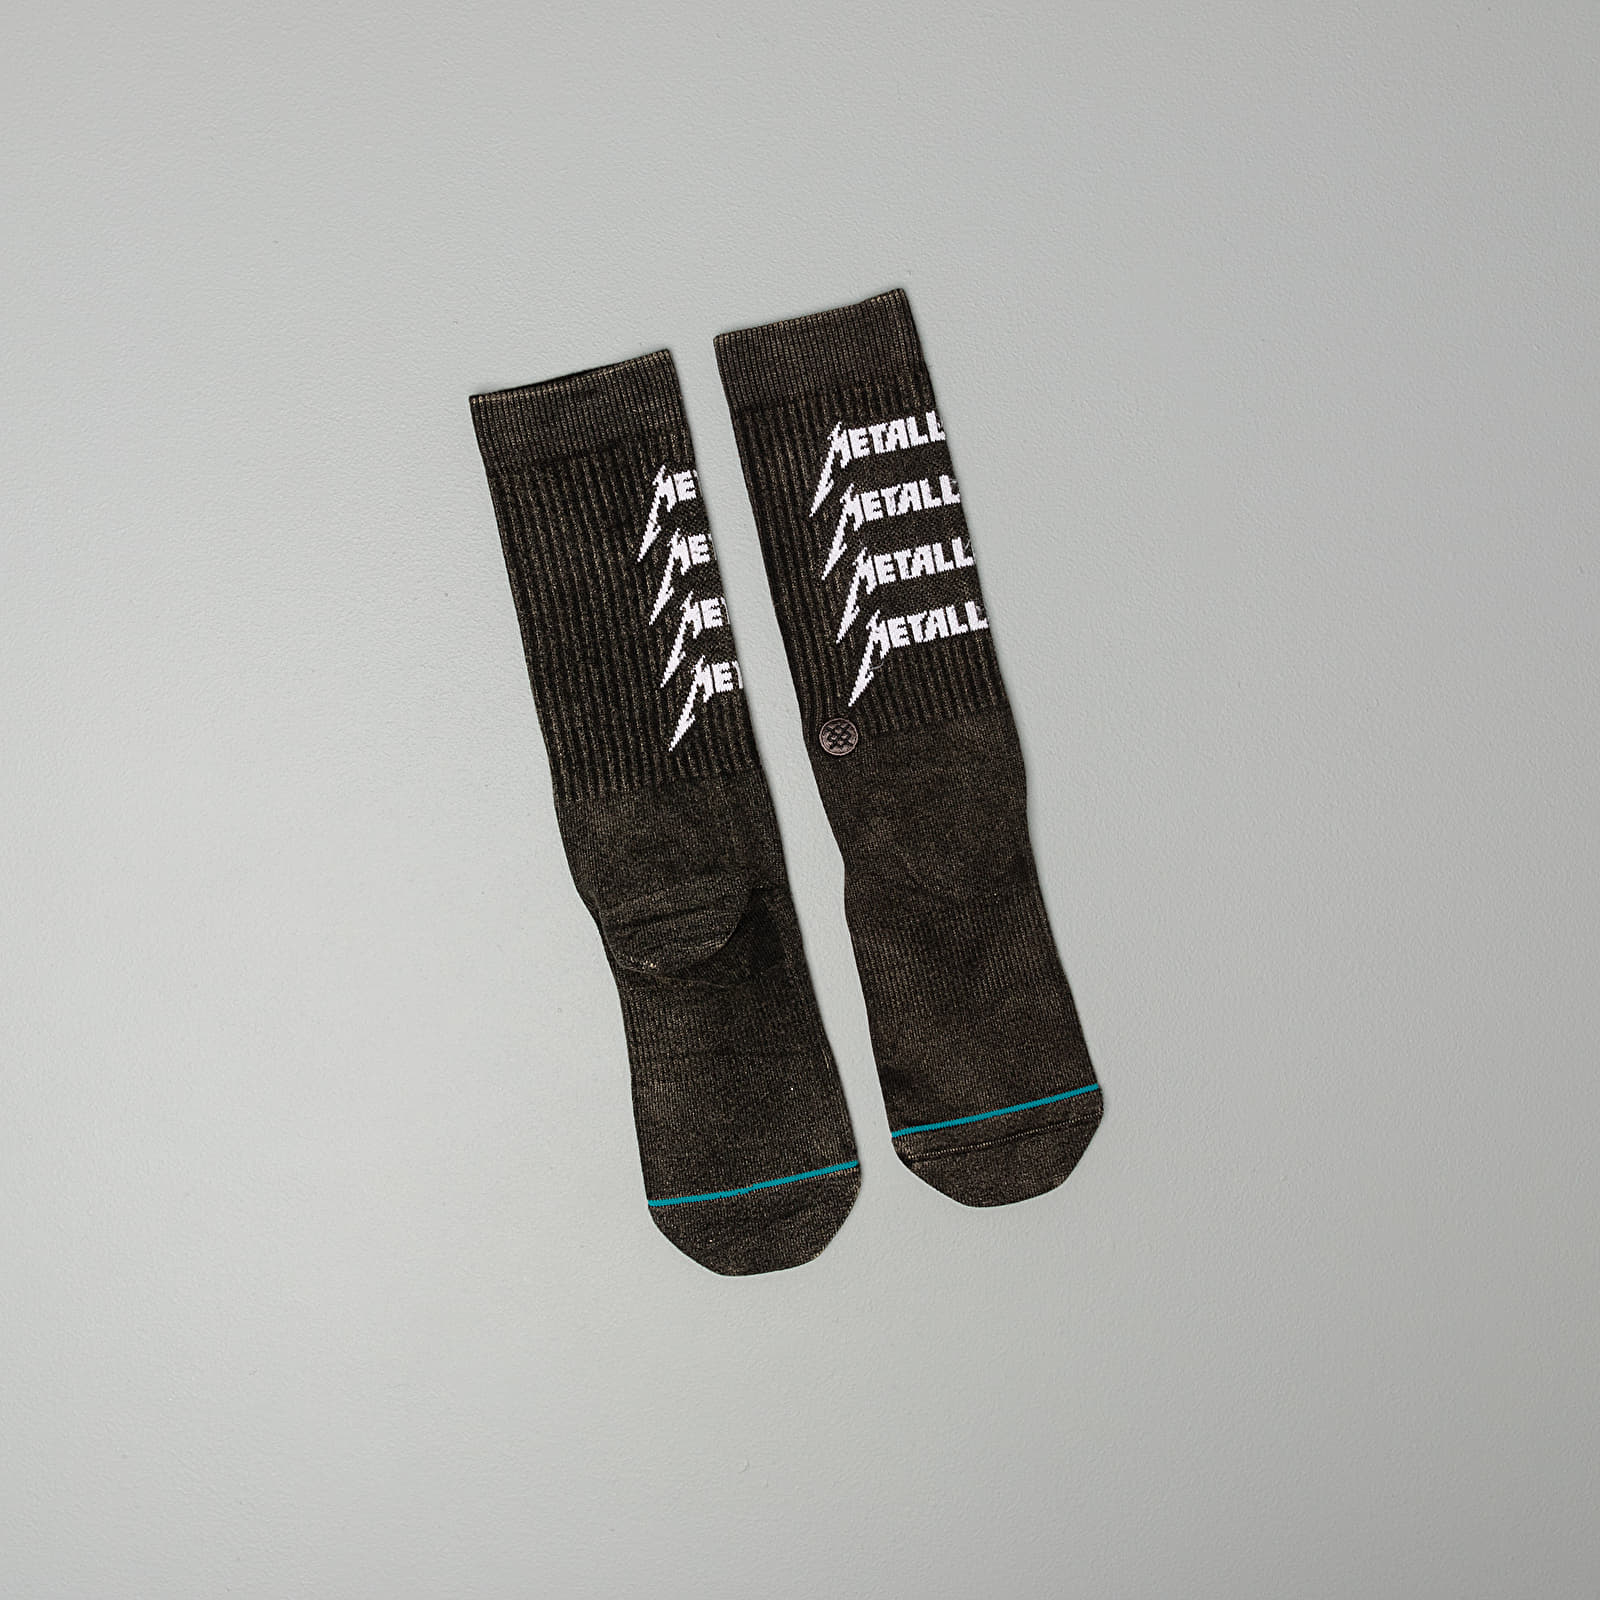 Socks Stance x Metallica Metallica Stack Socks Black